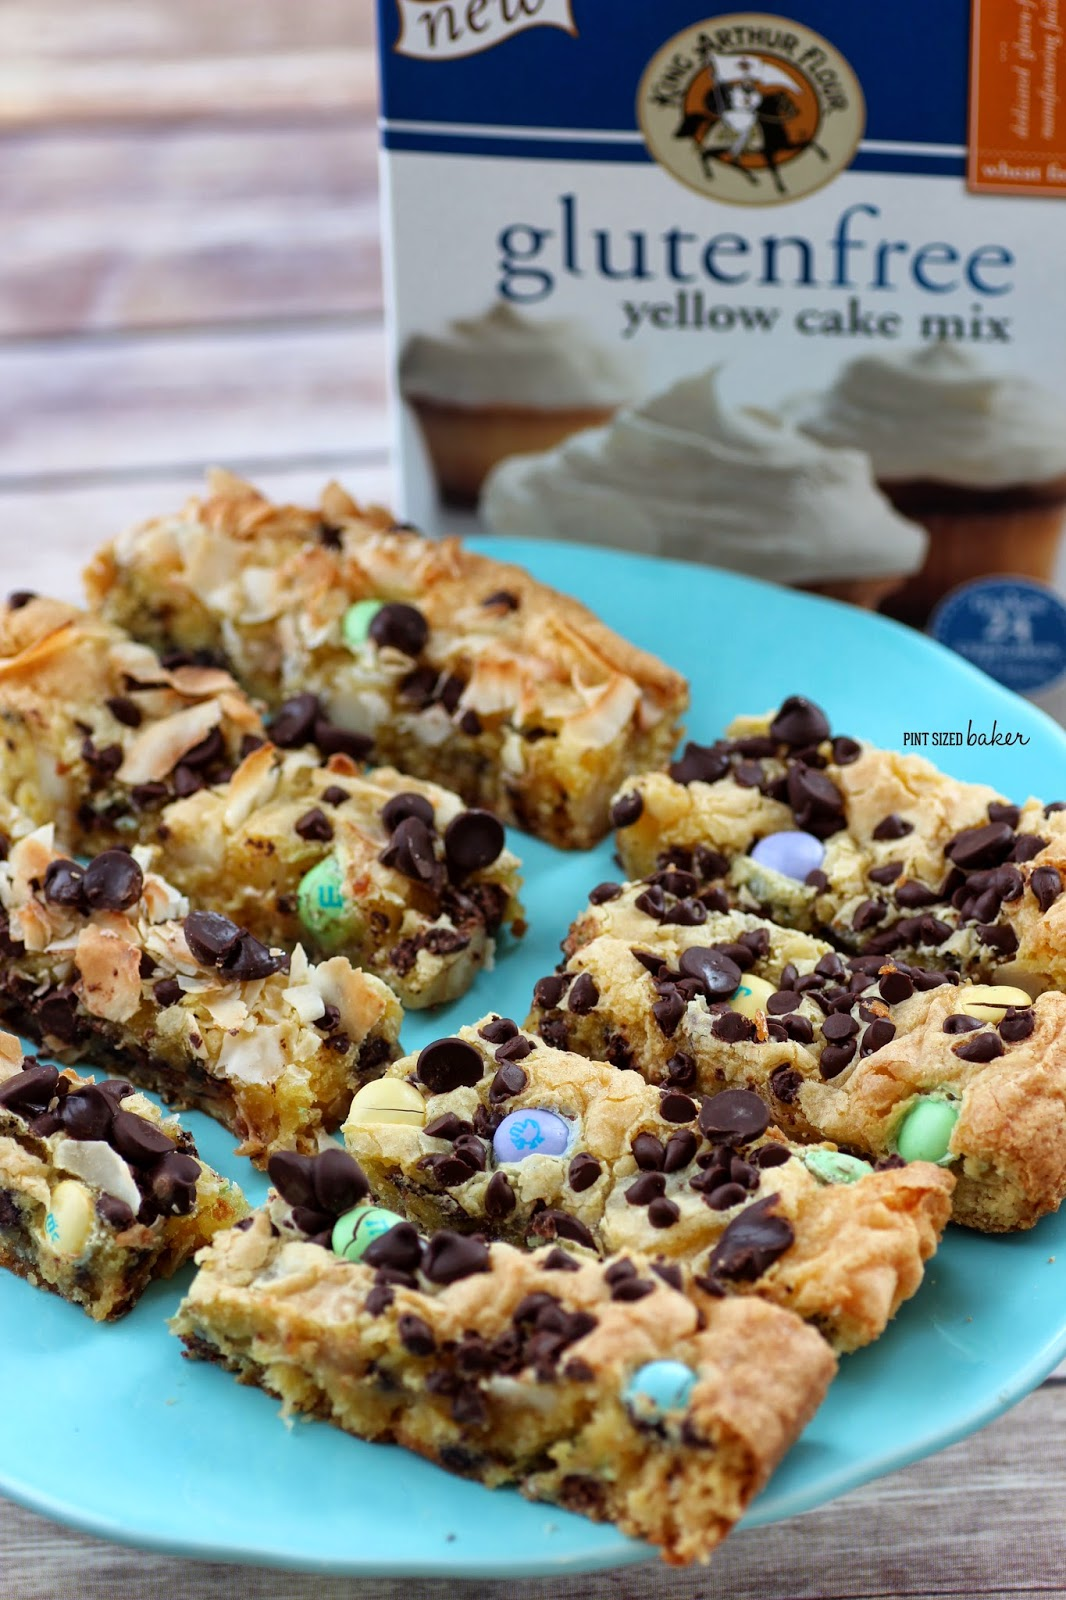 Struggling to find some GF baked snacks to serve that also taste great? You won't be let down with these Gluten Free Cake Mix Cookie Bars!